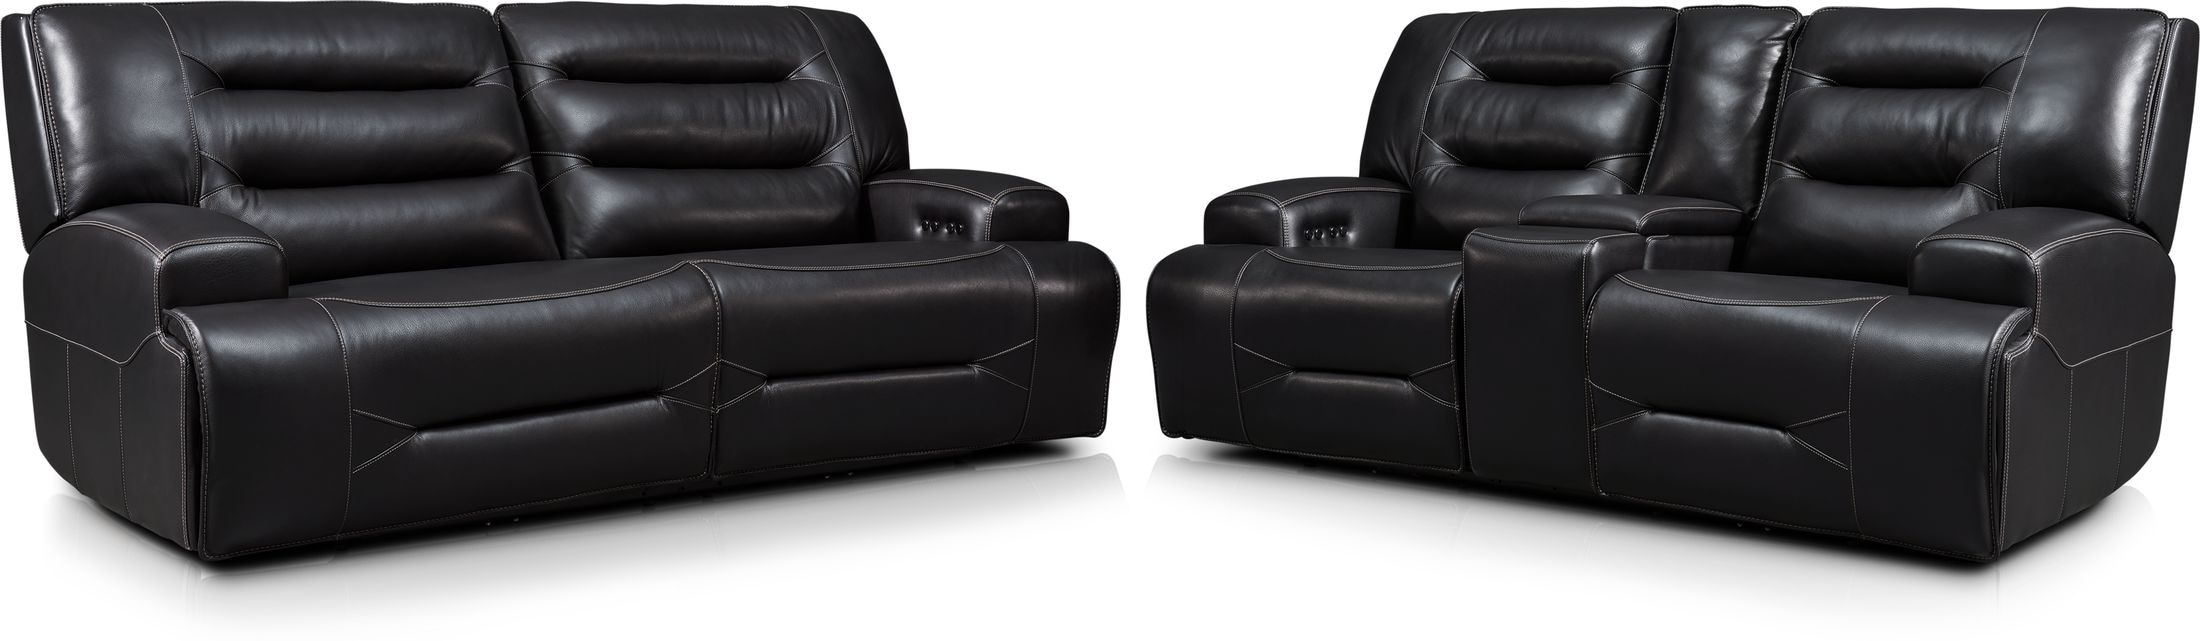 Living Room Furniture - Preston Dual-Power Reclining Sofa and Loveseat Set - Black